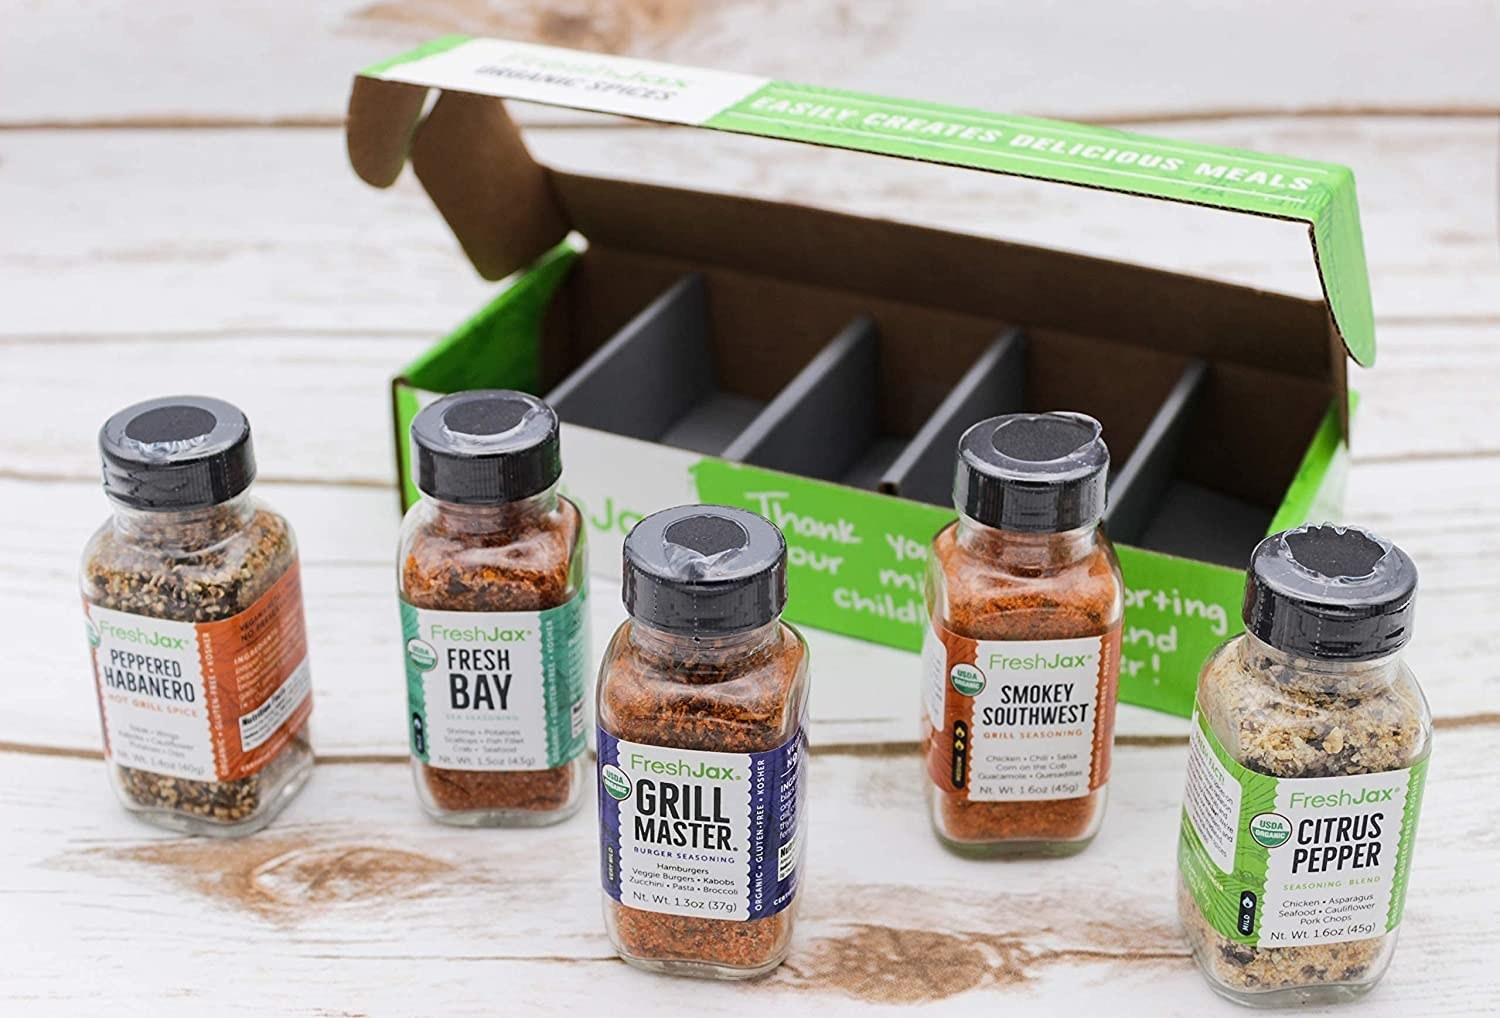 The set of FreshJax Grilling Spices